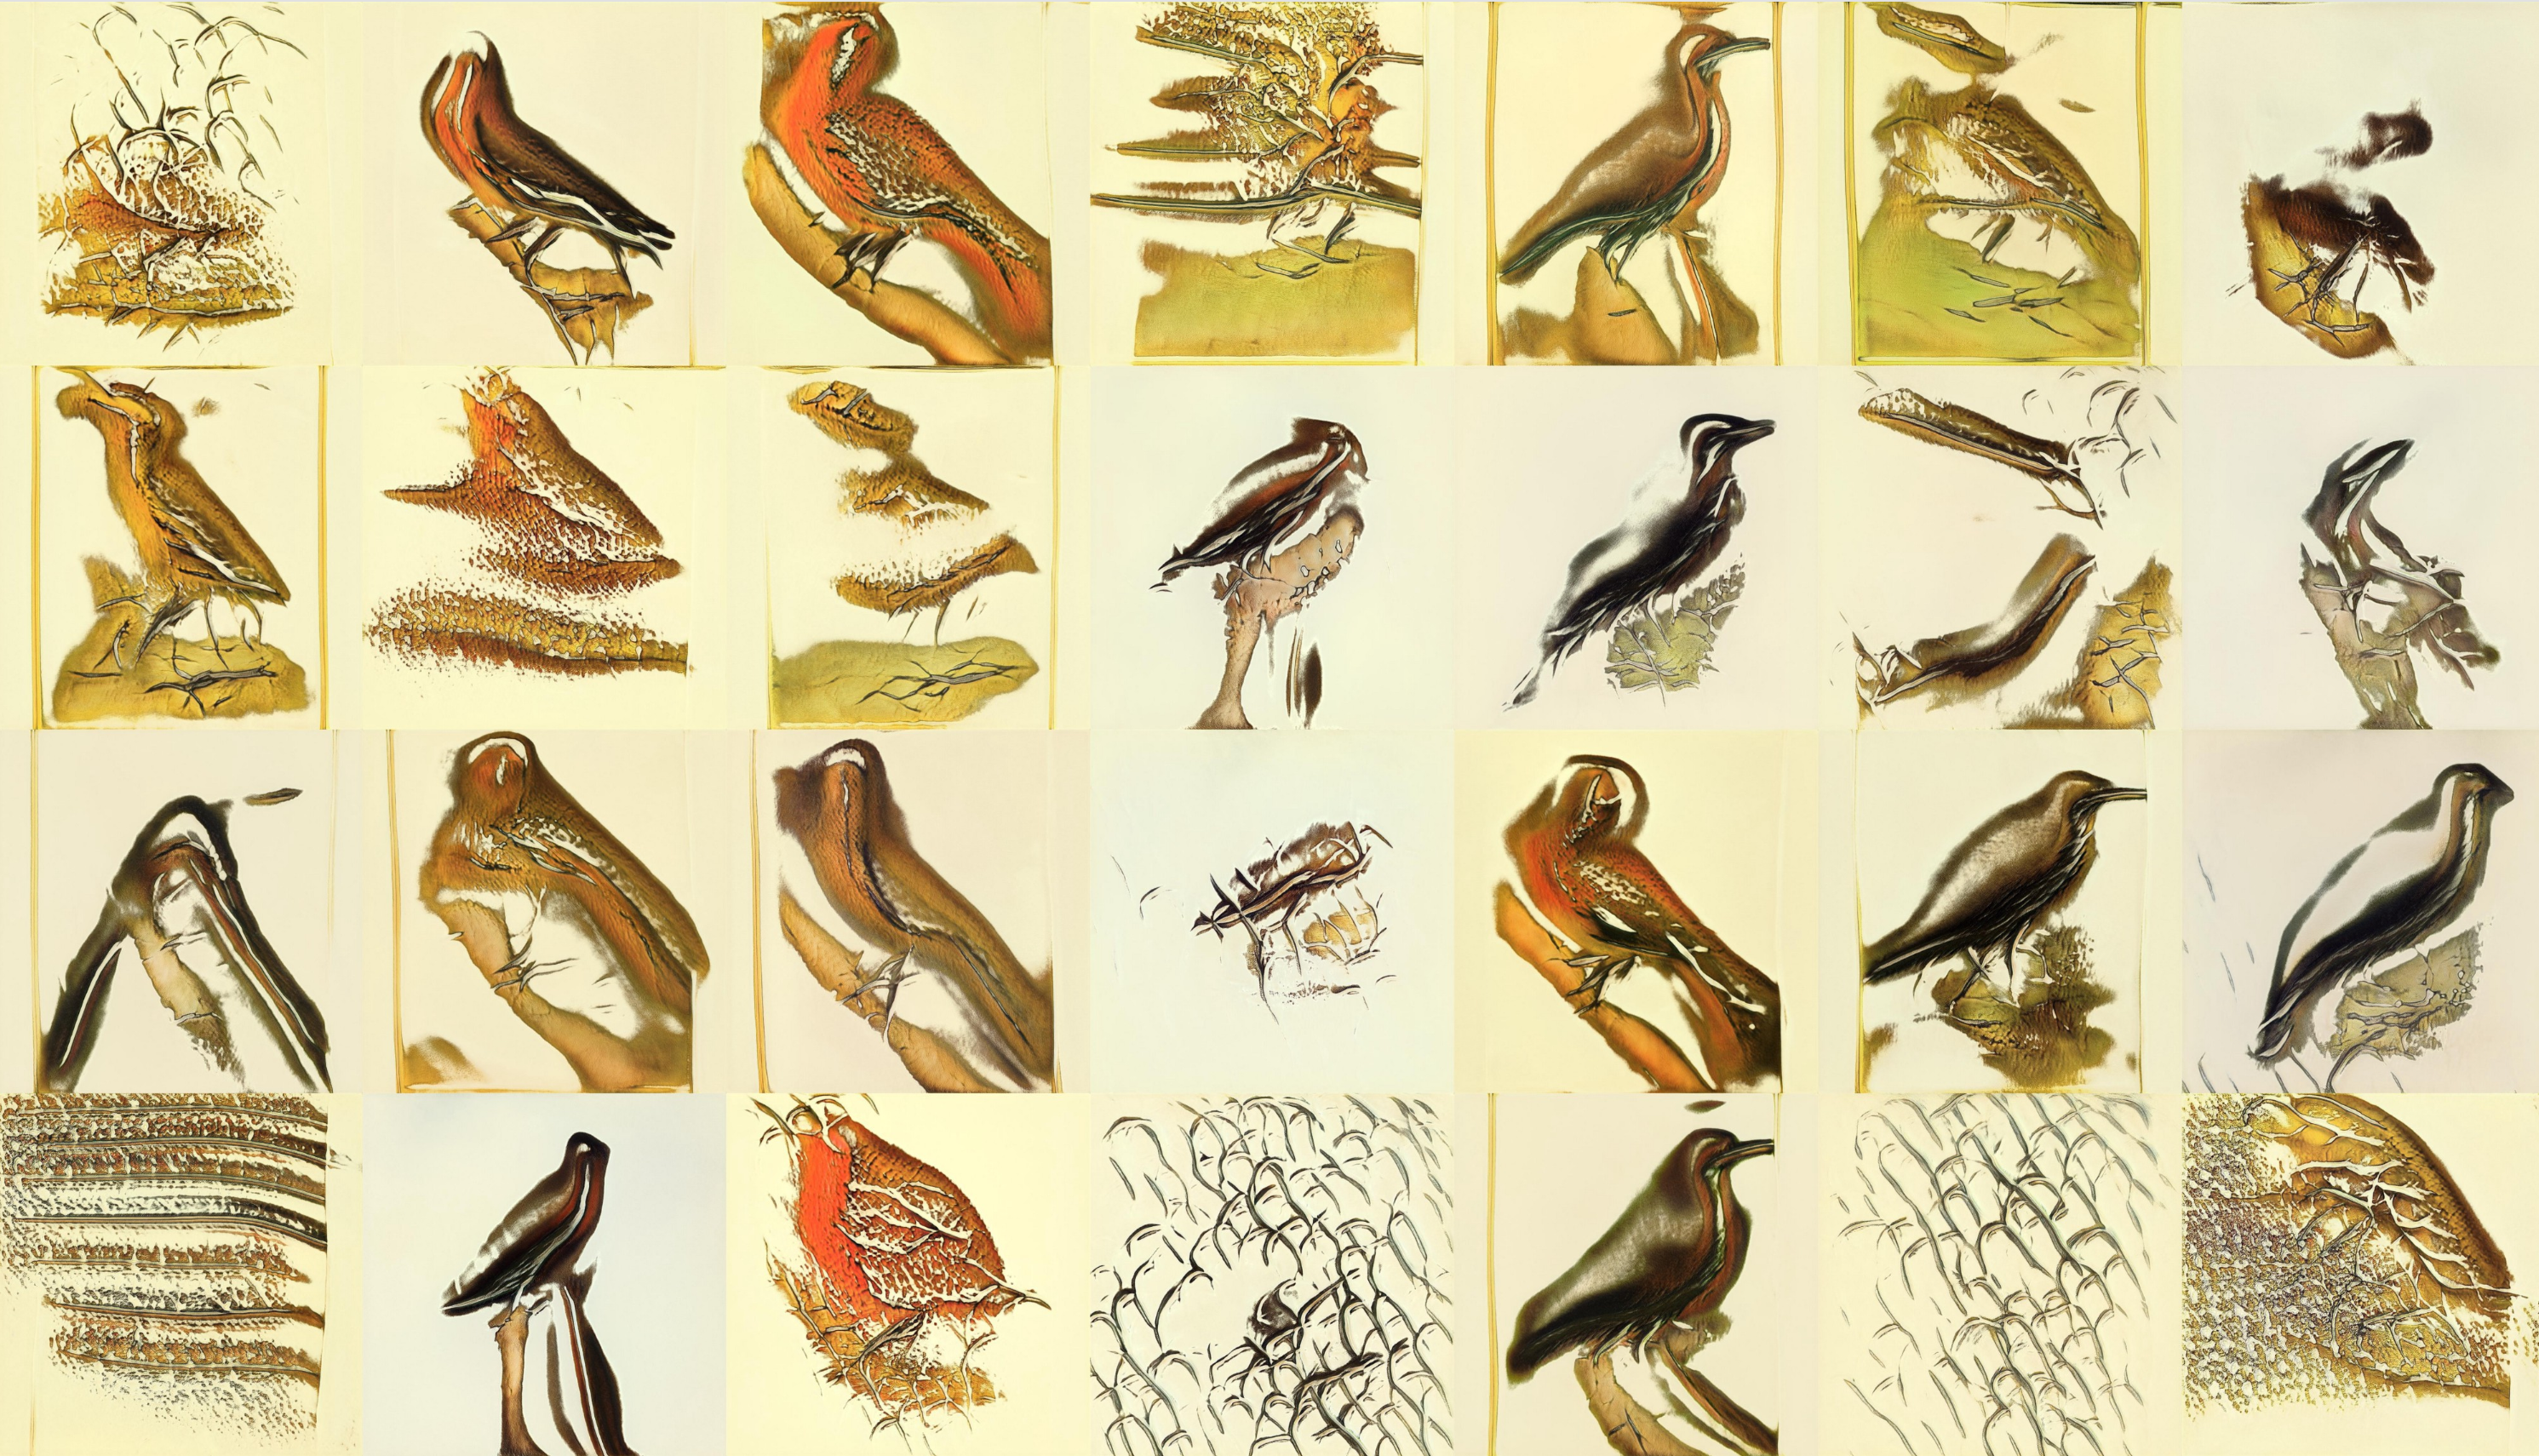 The contact sheet of images. Here the foreground shapes in a lot of cases are starting to look bird-shaped! There is no detail like feathers or eyes or legs, but the outlines look like birds in about half of the images. Some are still abstract, though, like just some wavy lines.